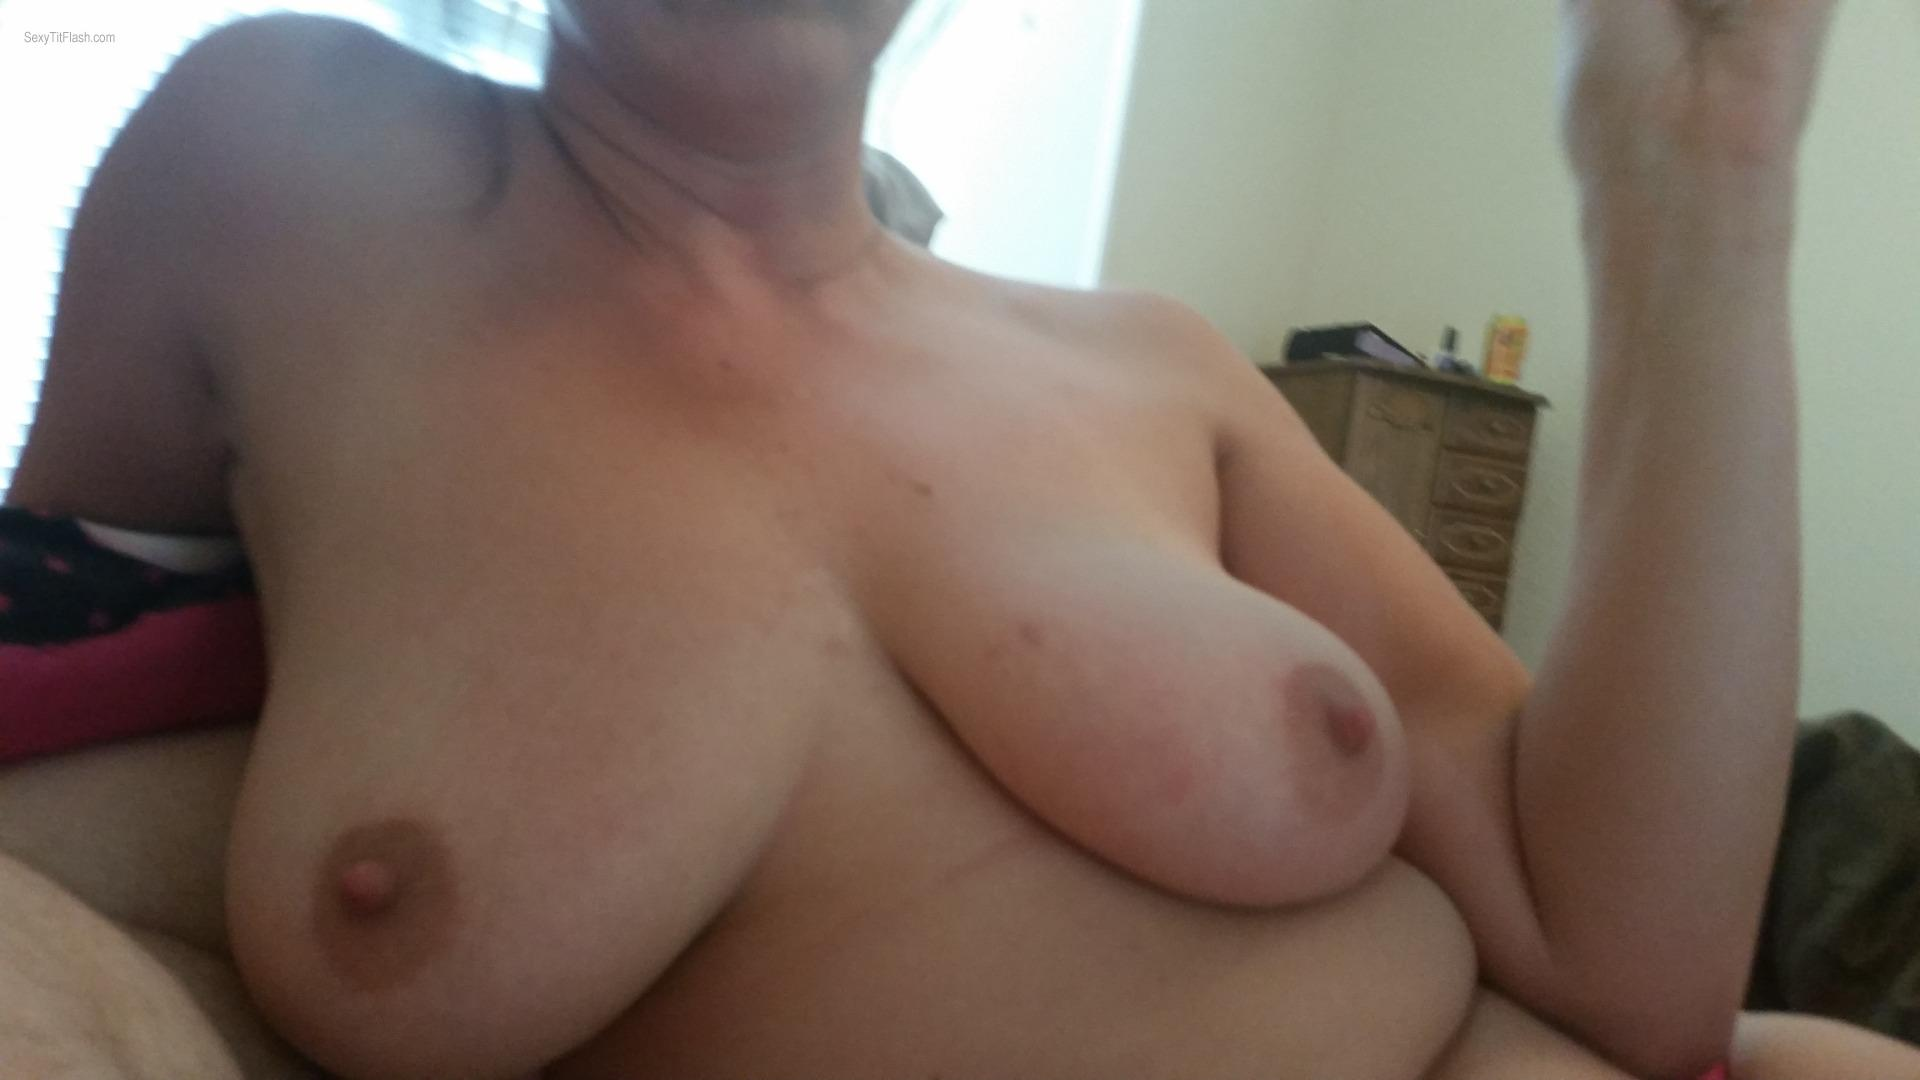 Tit Flash: My Very Big Tits - Naughty Mommy from United States